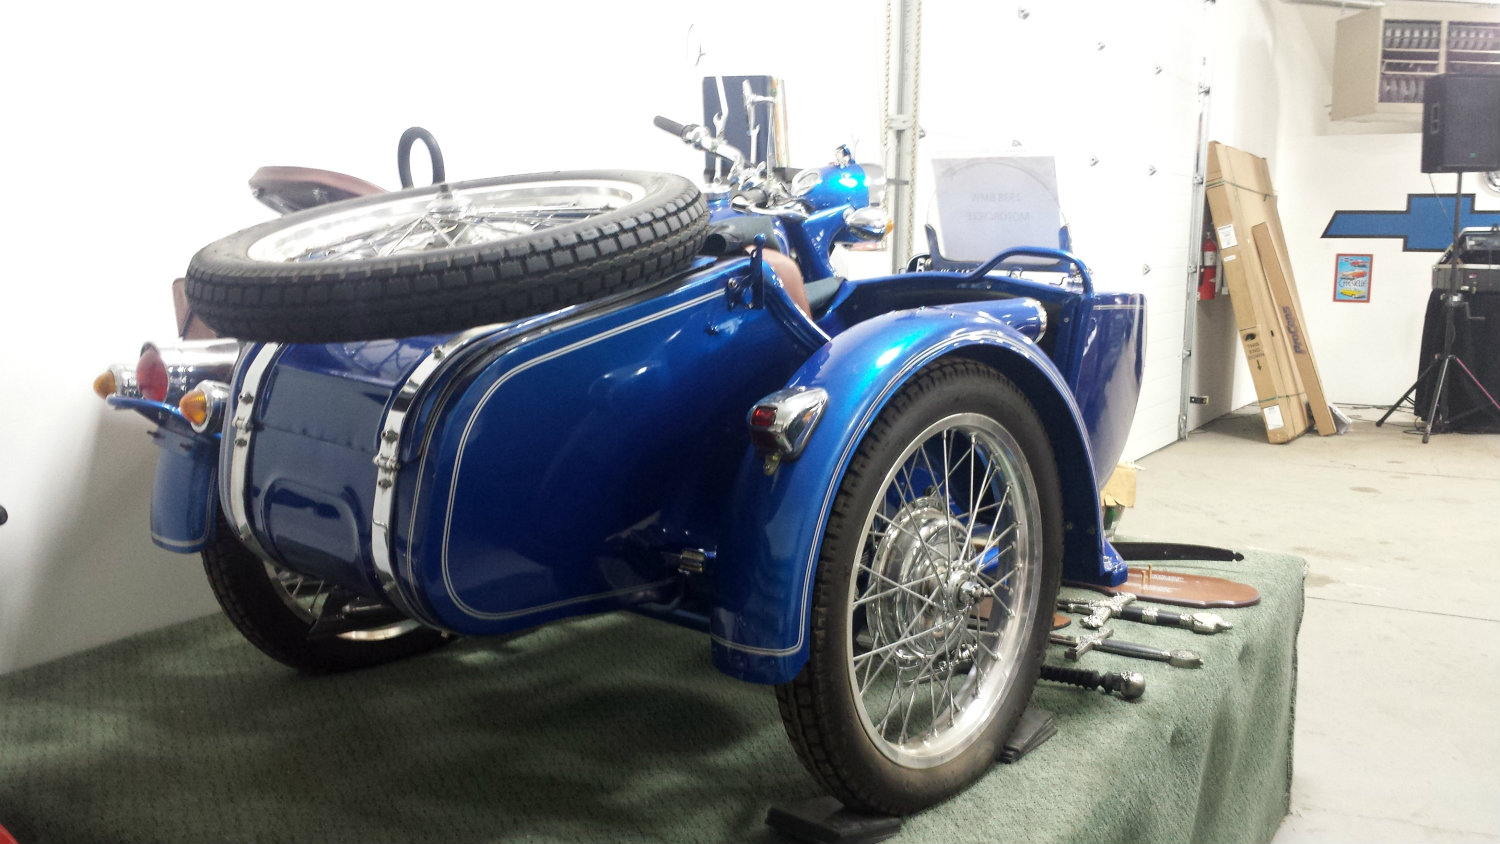 File:1938 BMW motorcycle with side car (15373173746) jpg